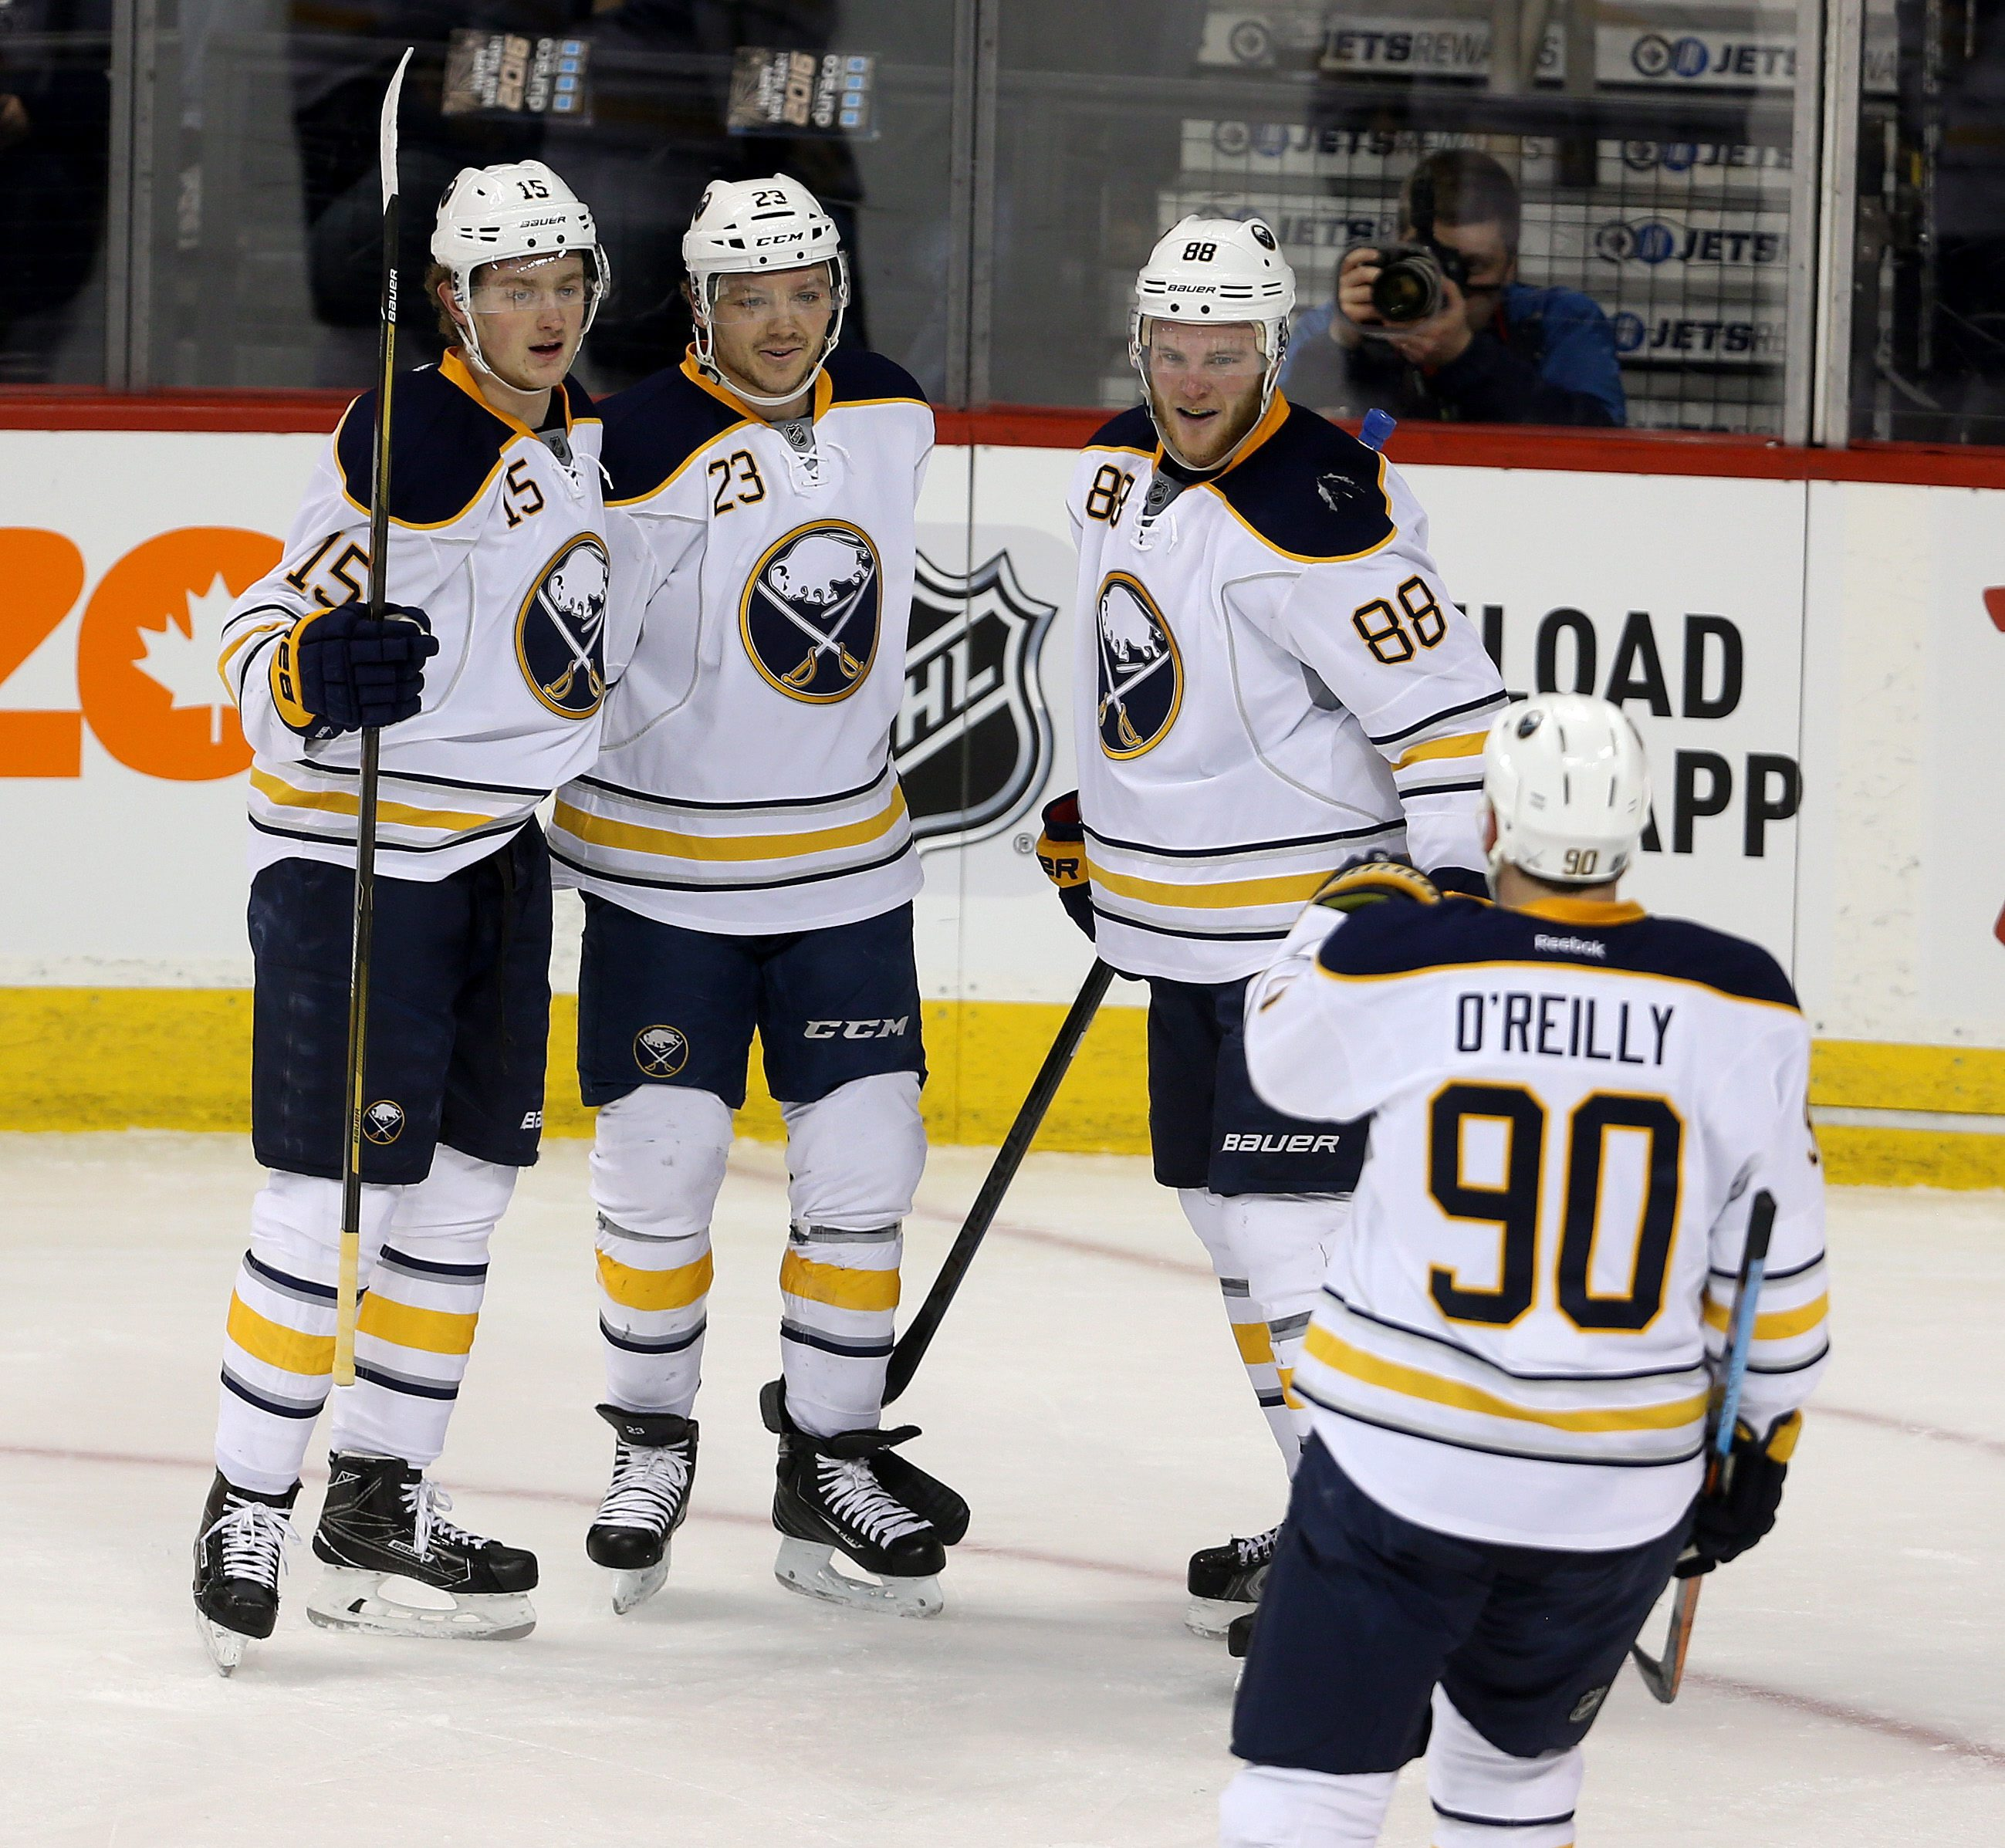 Buffalo Sabres' Jack Eichel (15), Sam Reinhart (23), Jamie McGinn (88) and Ryan O'Reilly (90) celebrate after Reinhart scored his second goal of the first period during NHL hockey game action against the Winnipeg Jets' in Winnipeg, Manitoba, Sunday, Jan.